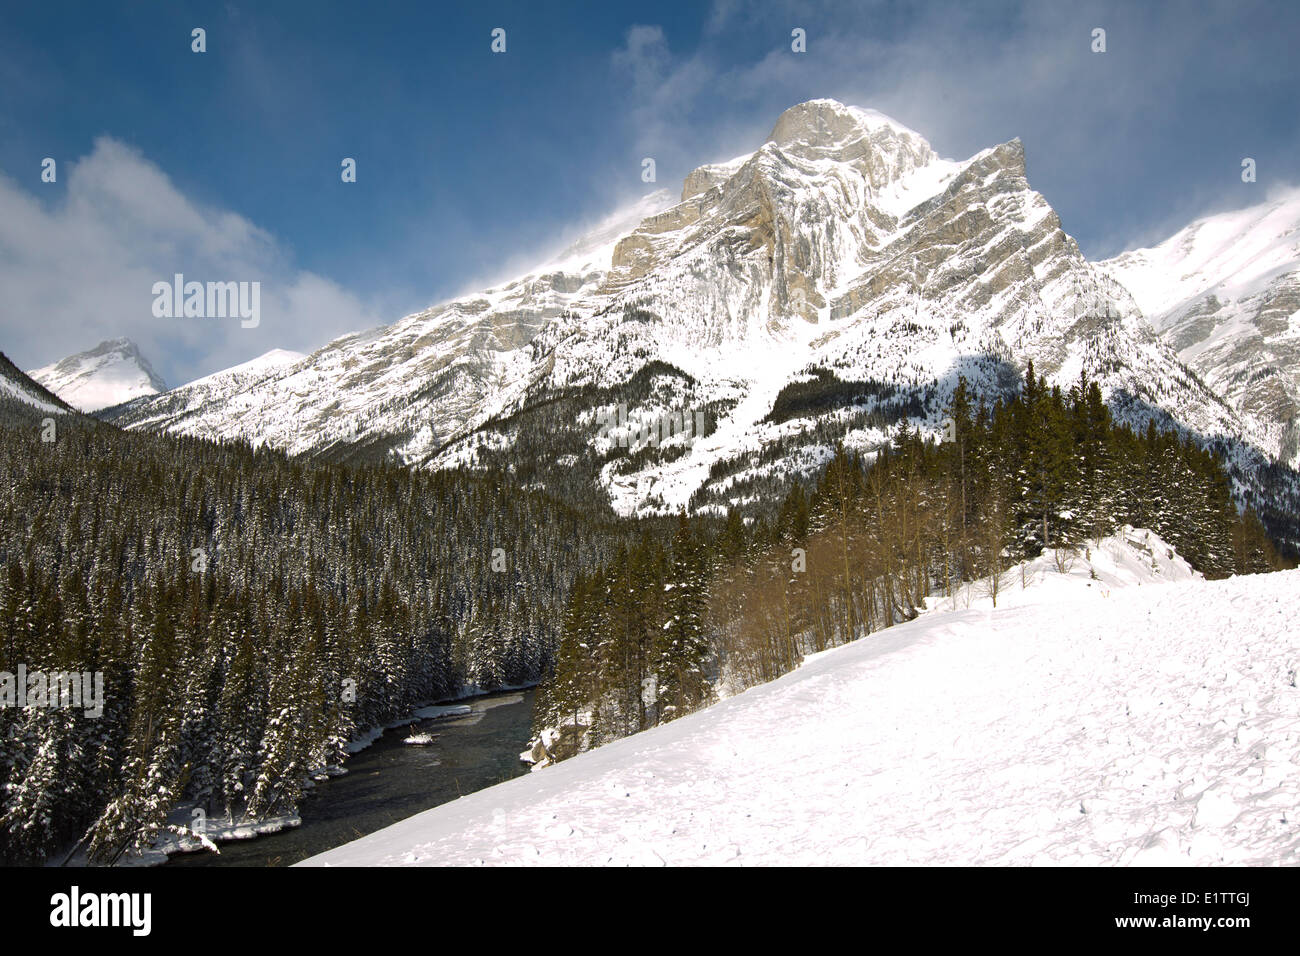 Ribbon Creek, Kananaskis Provincial Park, Alberta - Stock Image